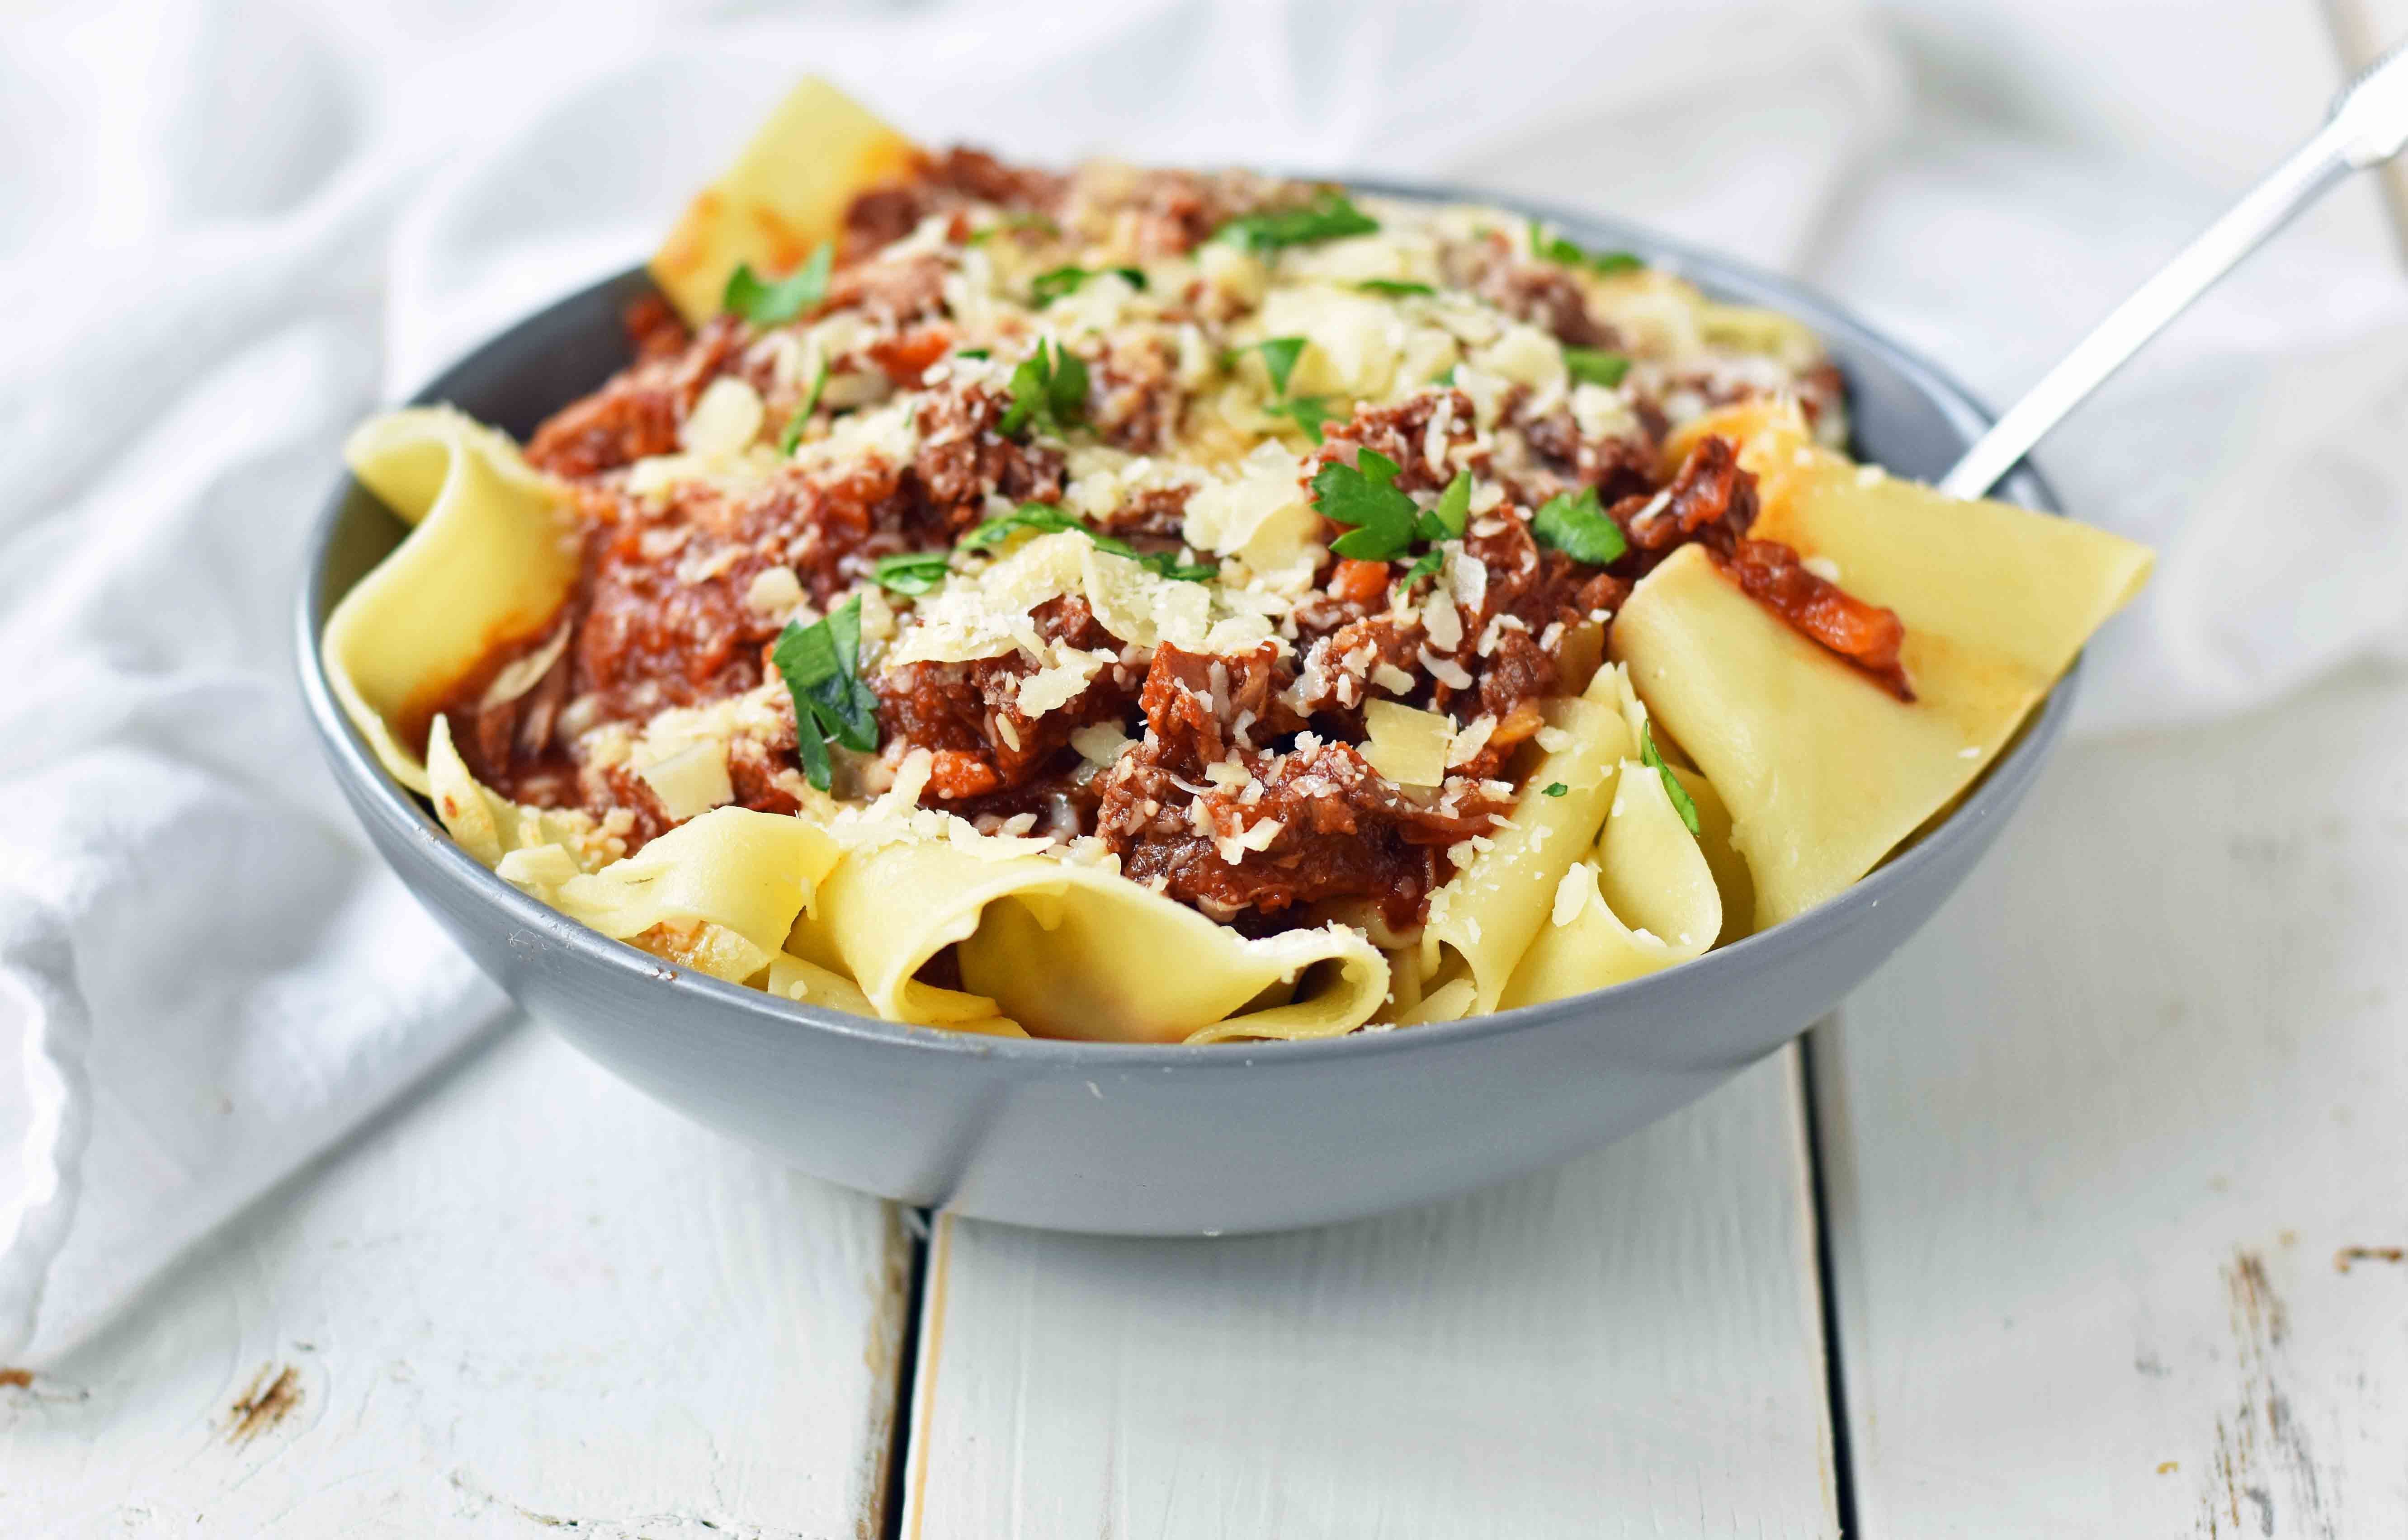 Slow Cooker Instant Pot Beef Ragu. This braised shredded beef ragu with pappardellepasta can be made in a slow cooker or instant pot pressure cooker. It makes the most tender, flavorful beef in a rich, velvety sauce. It is the ultimate comfort meal in a bowl! This Beef Ragu can be put on top of spiralized vegetables, mashed potatoes, or polenta for a gluten-free dinner. www.modernhoney.com